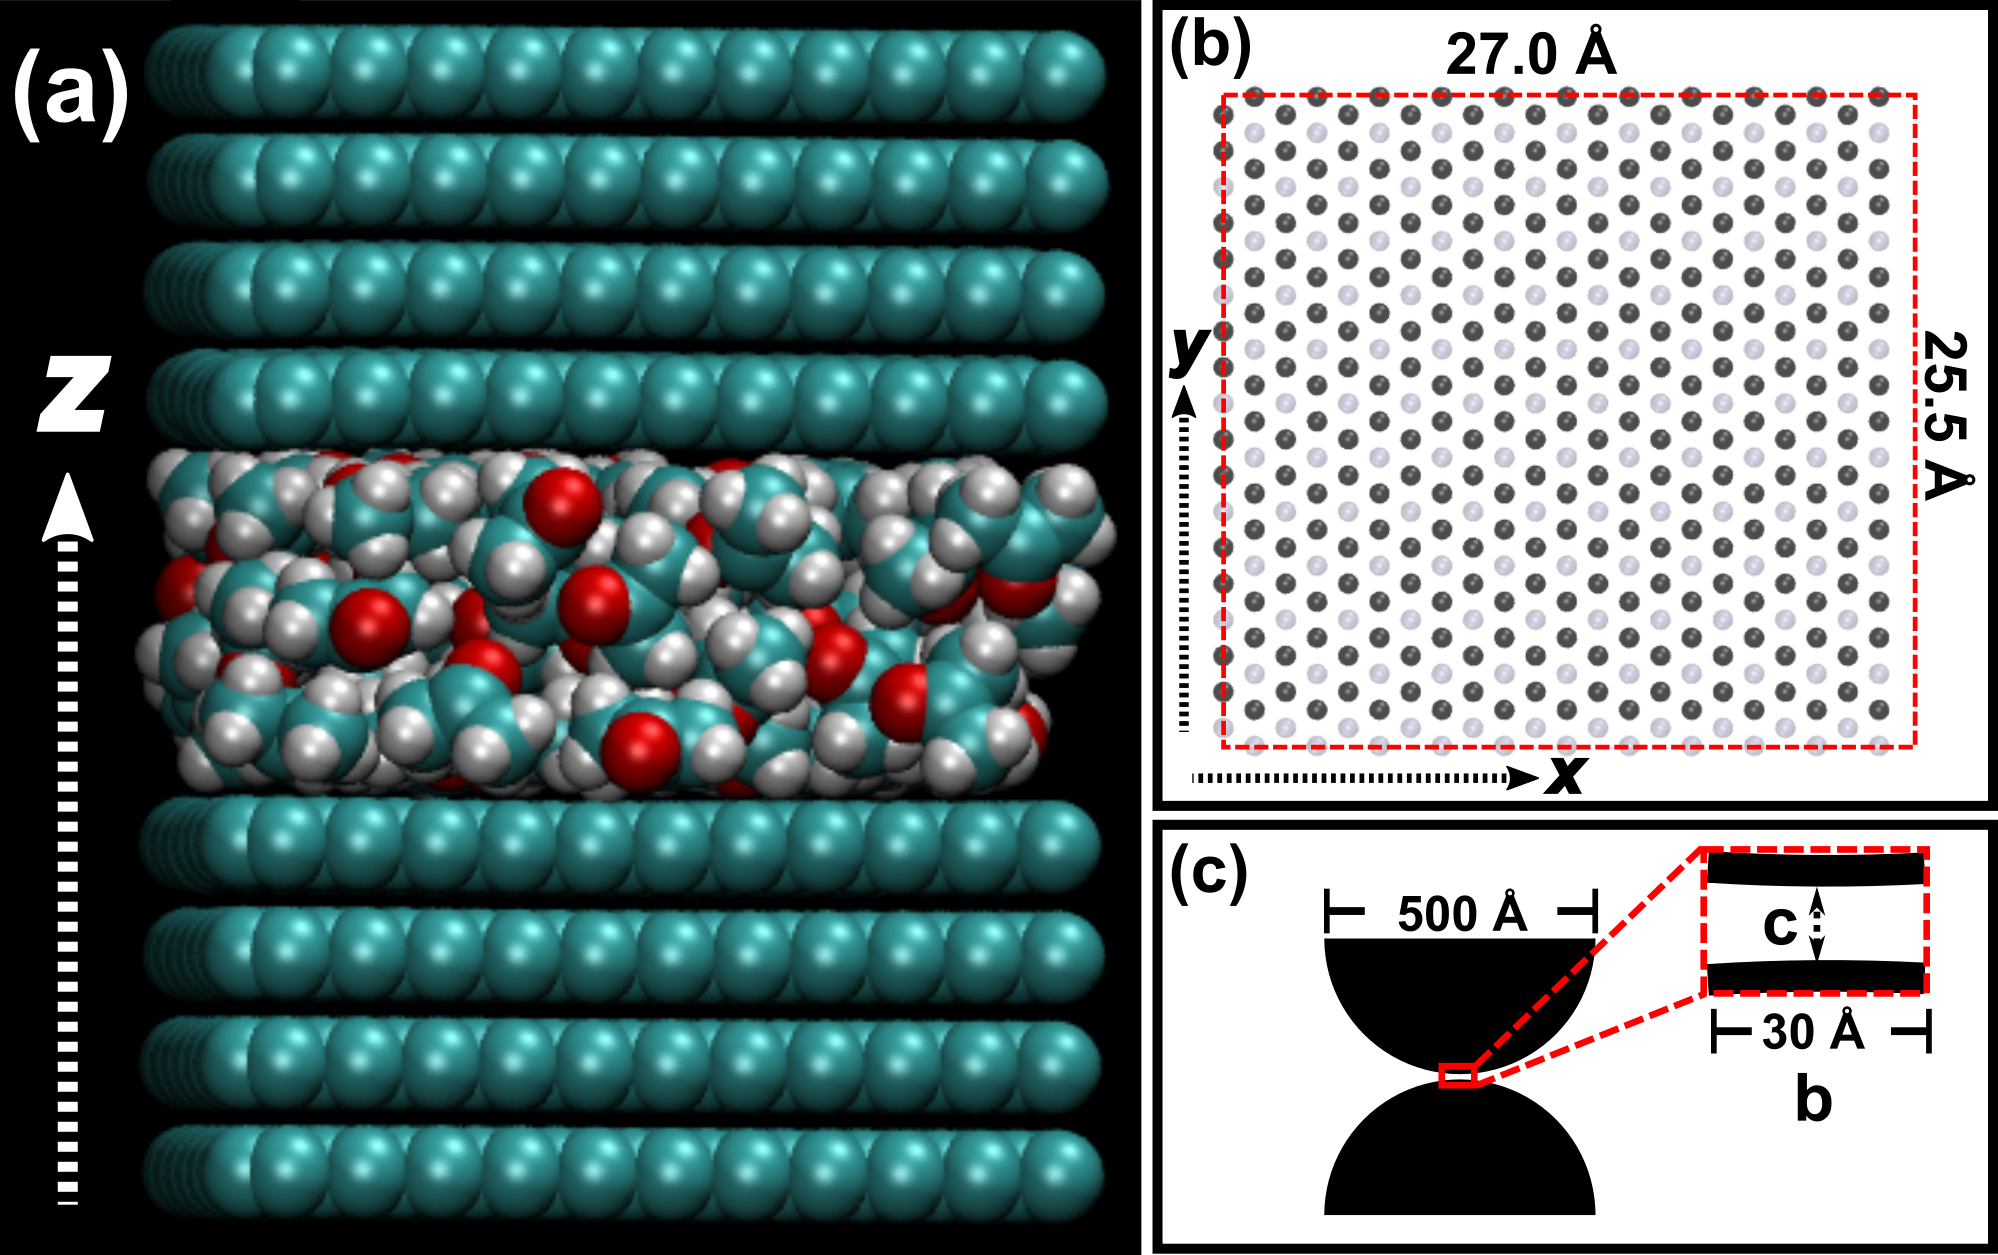 Enhanced ordering reduces electric susceptibility of liquids confined to graphene slit pores